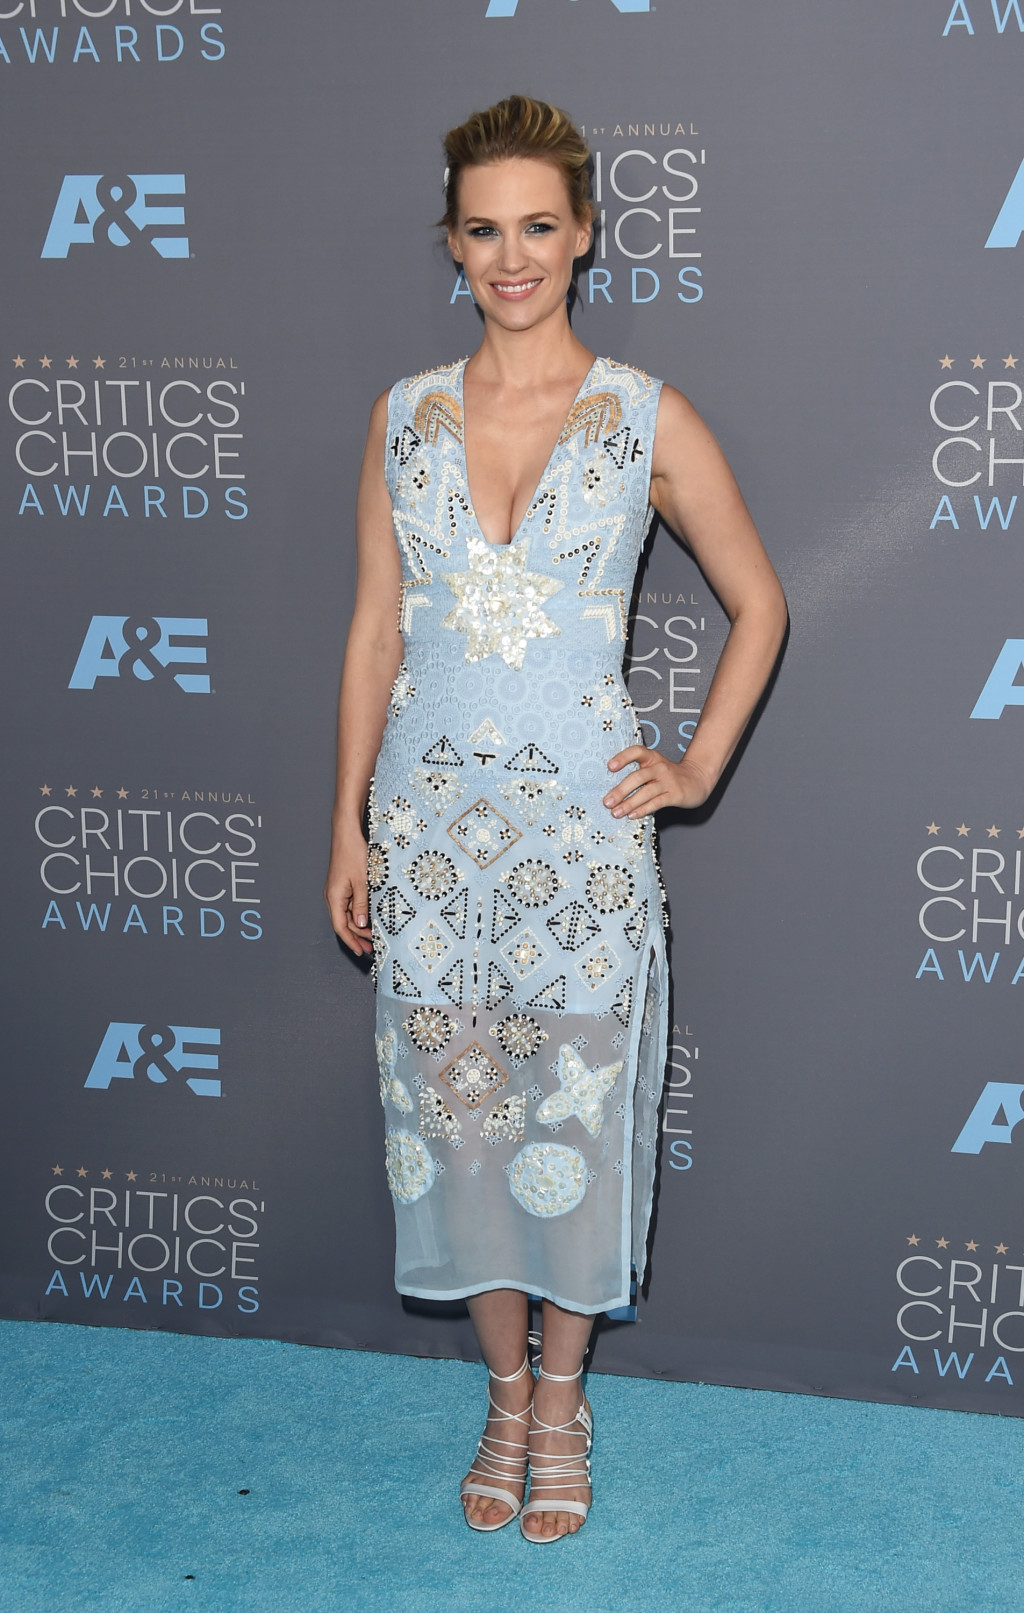 January Jones pastel blue embellished Altuzarra dress at the 2016 Critics' Choice Awards